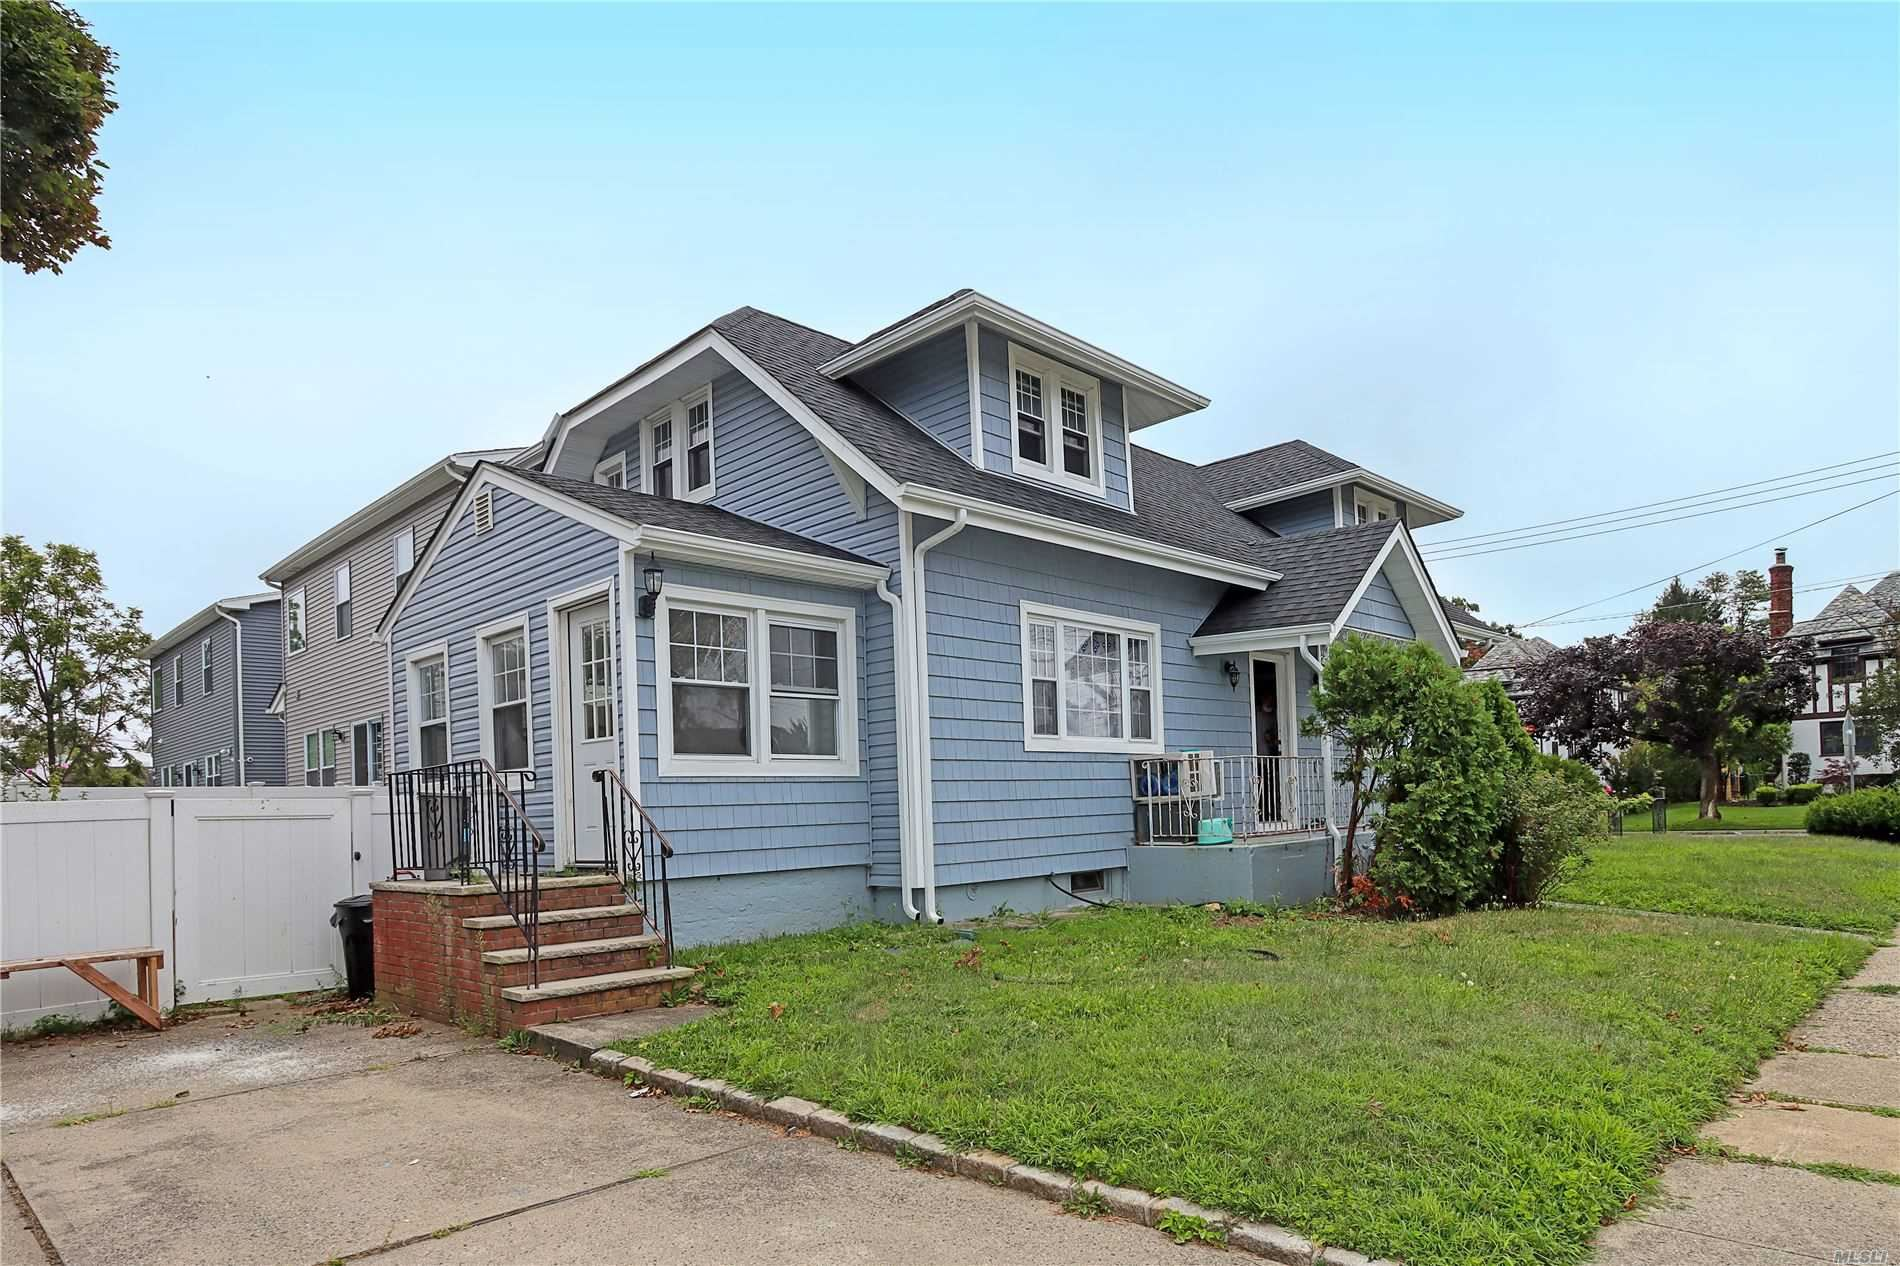 131 Gregory Avenue, Merrick, NY 11566 - MLS#: 3244444